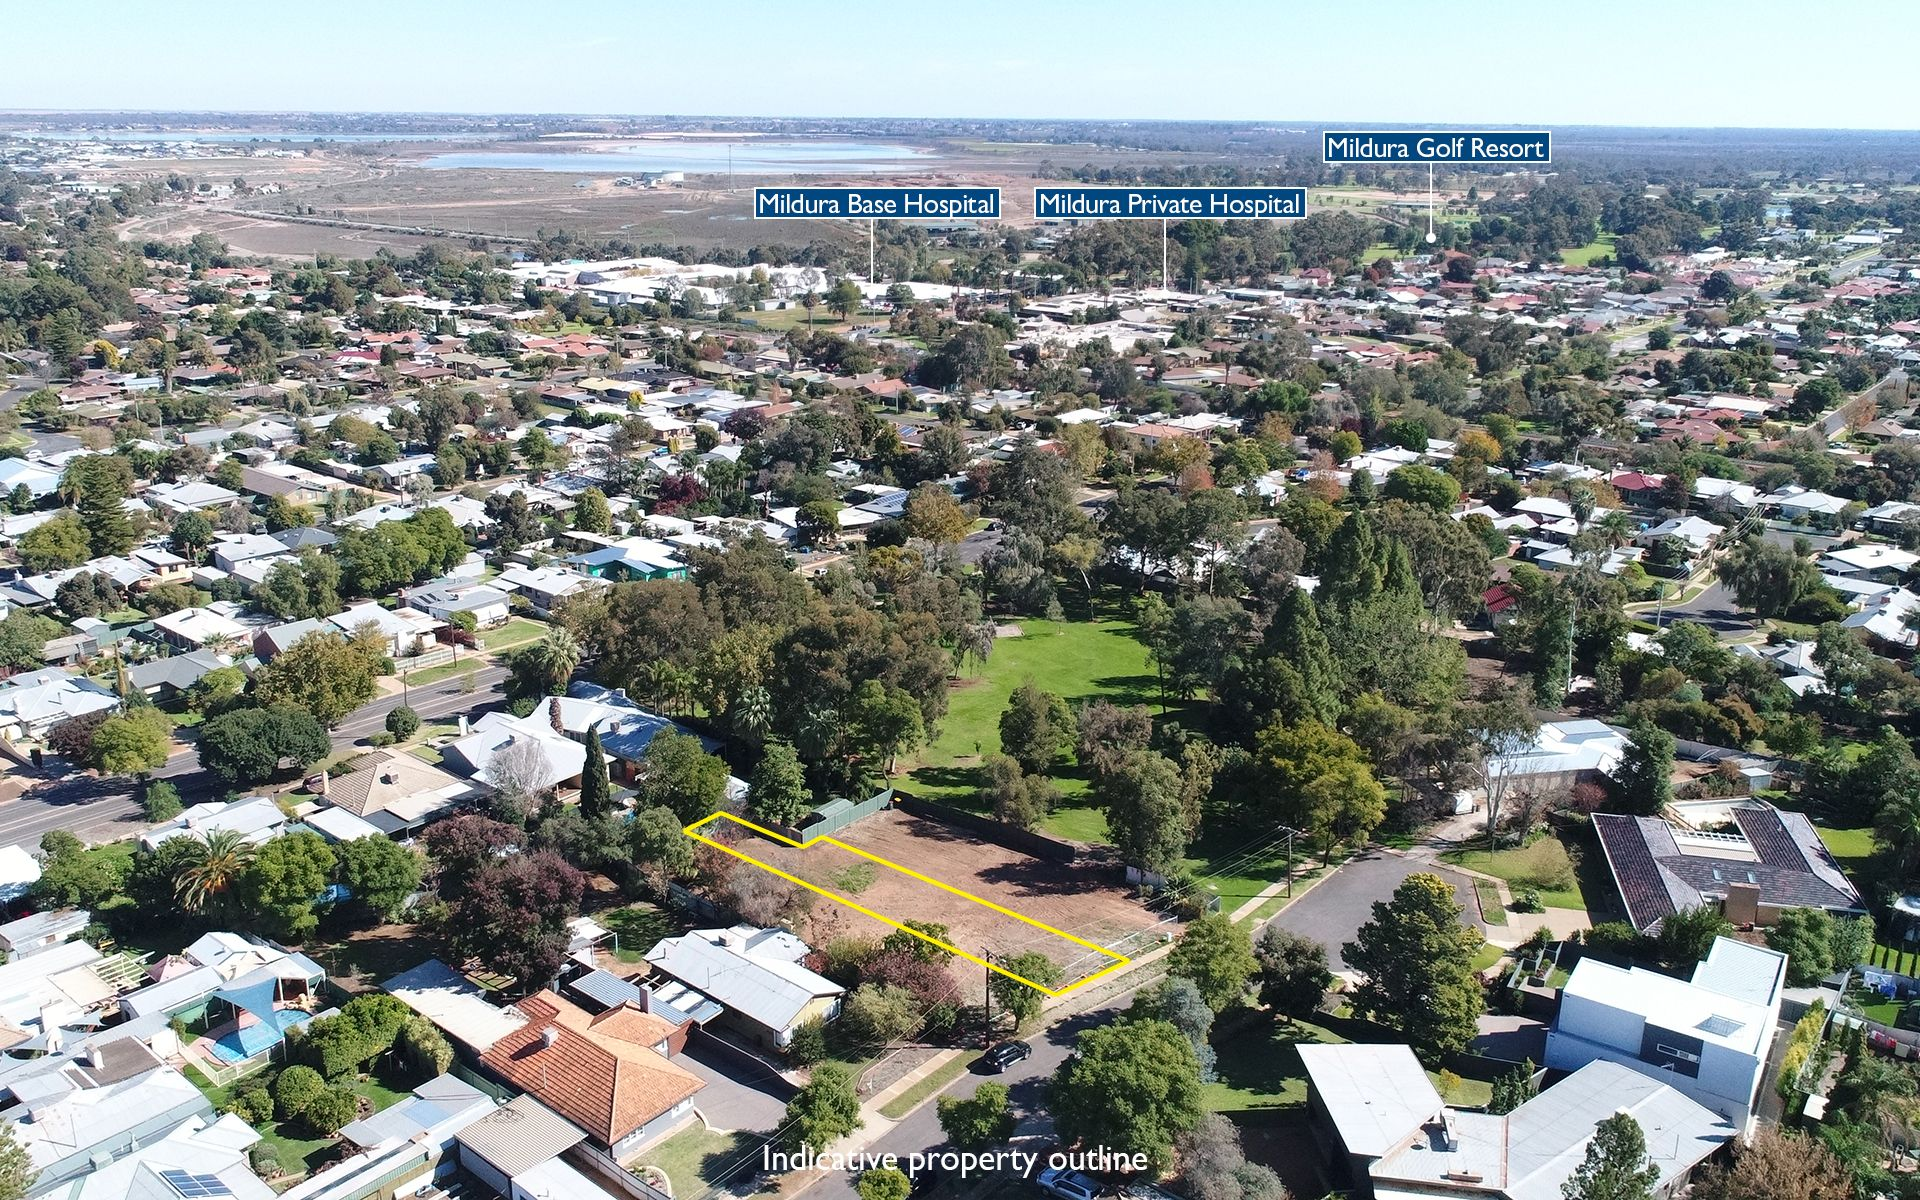 Lot 1/5 Willow Grove - Stage 2, Mildura, VIC 3500